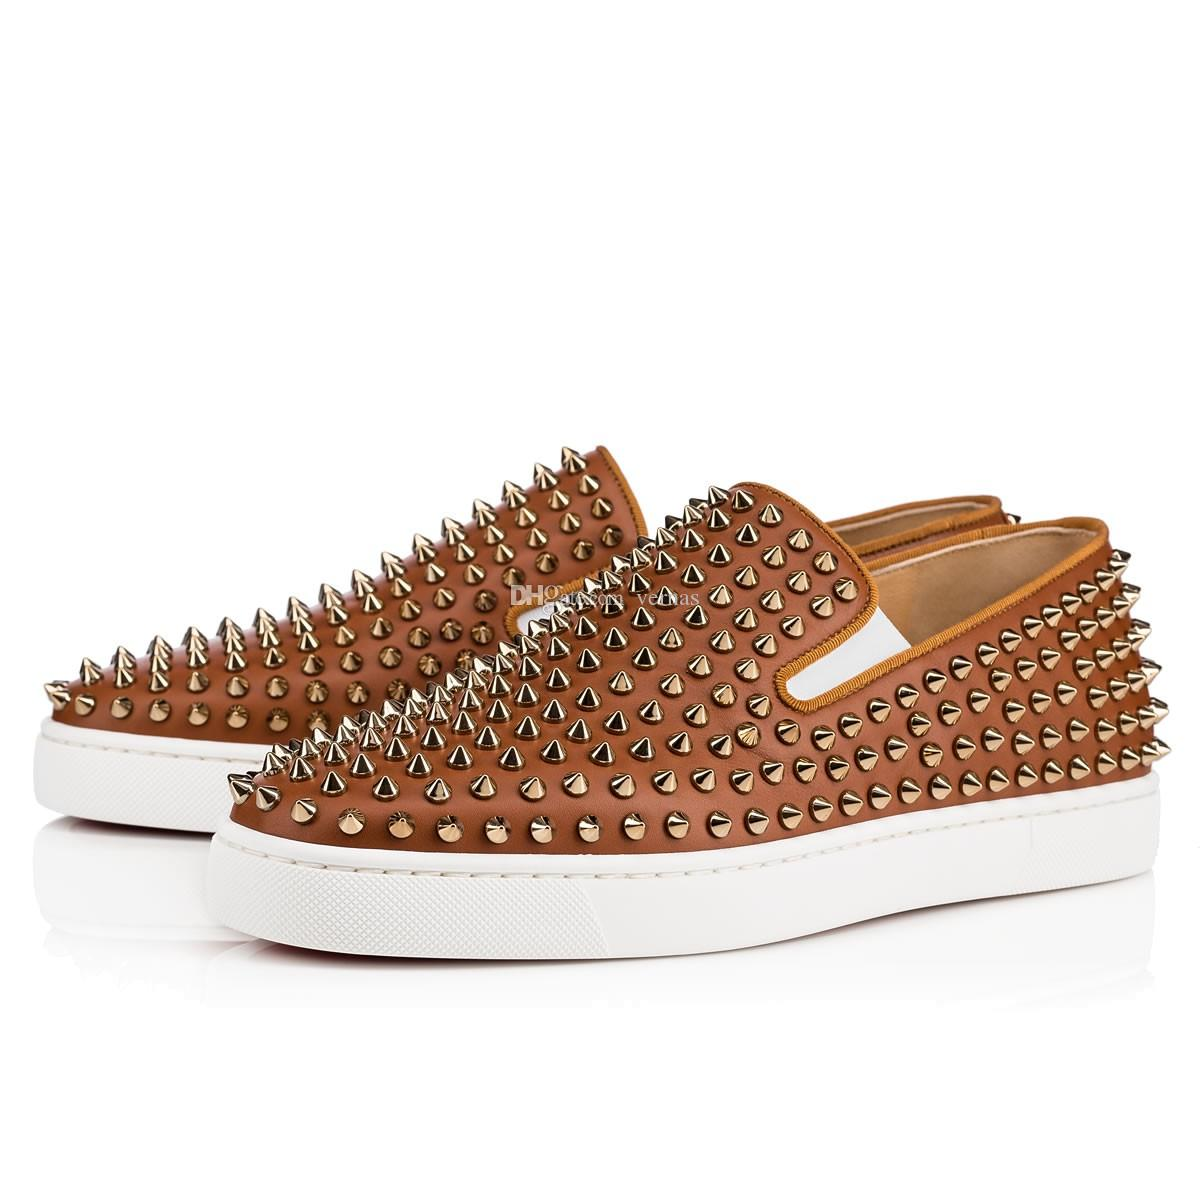 f3fa5f853c7 Fashion Rivet Spike Roller-Boat Flat Men Dress Red Bottom Loafers  Shoes,Perfect Casual Walking Slip On Rivets Luxury With Leisure Shoes